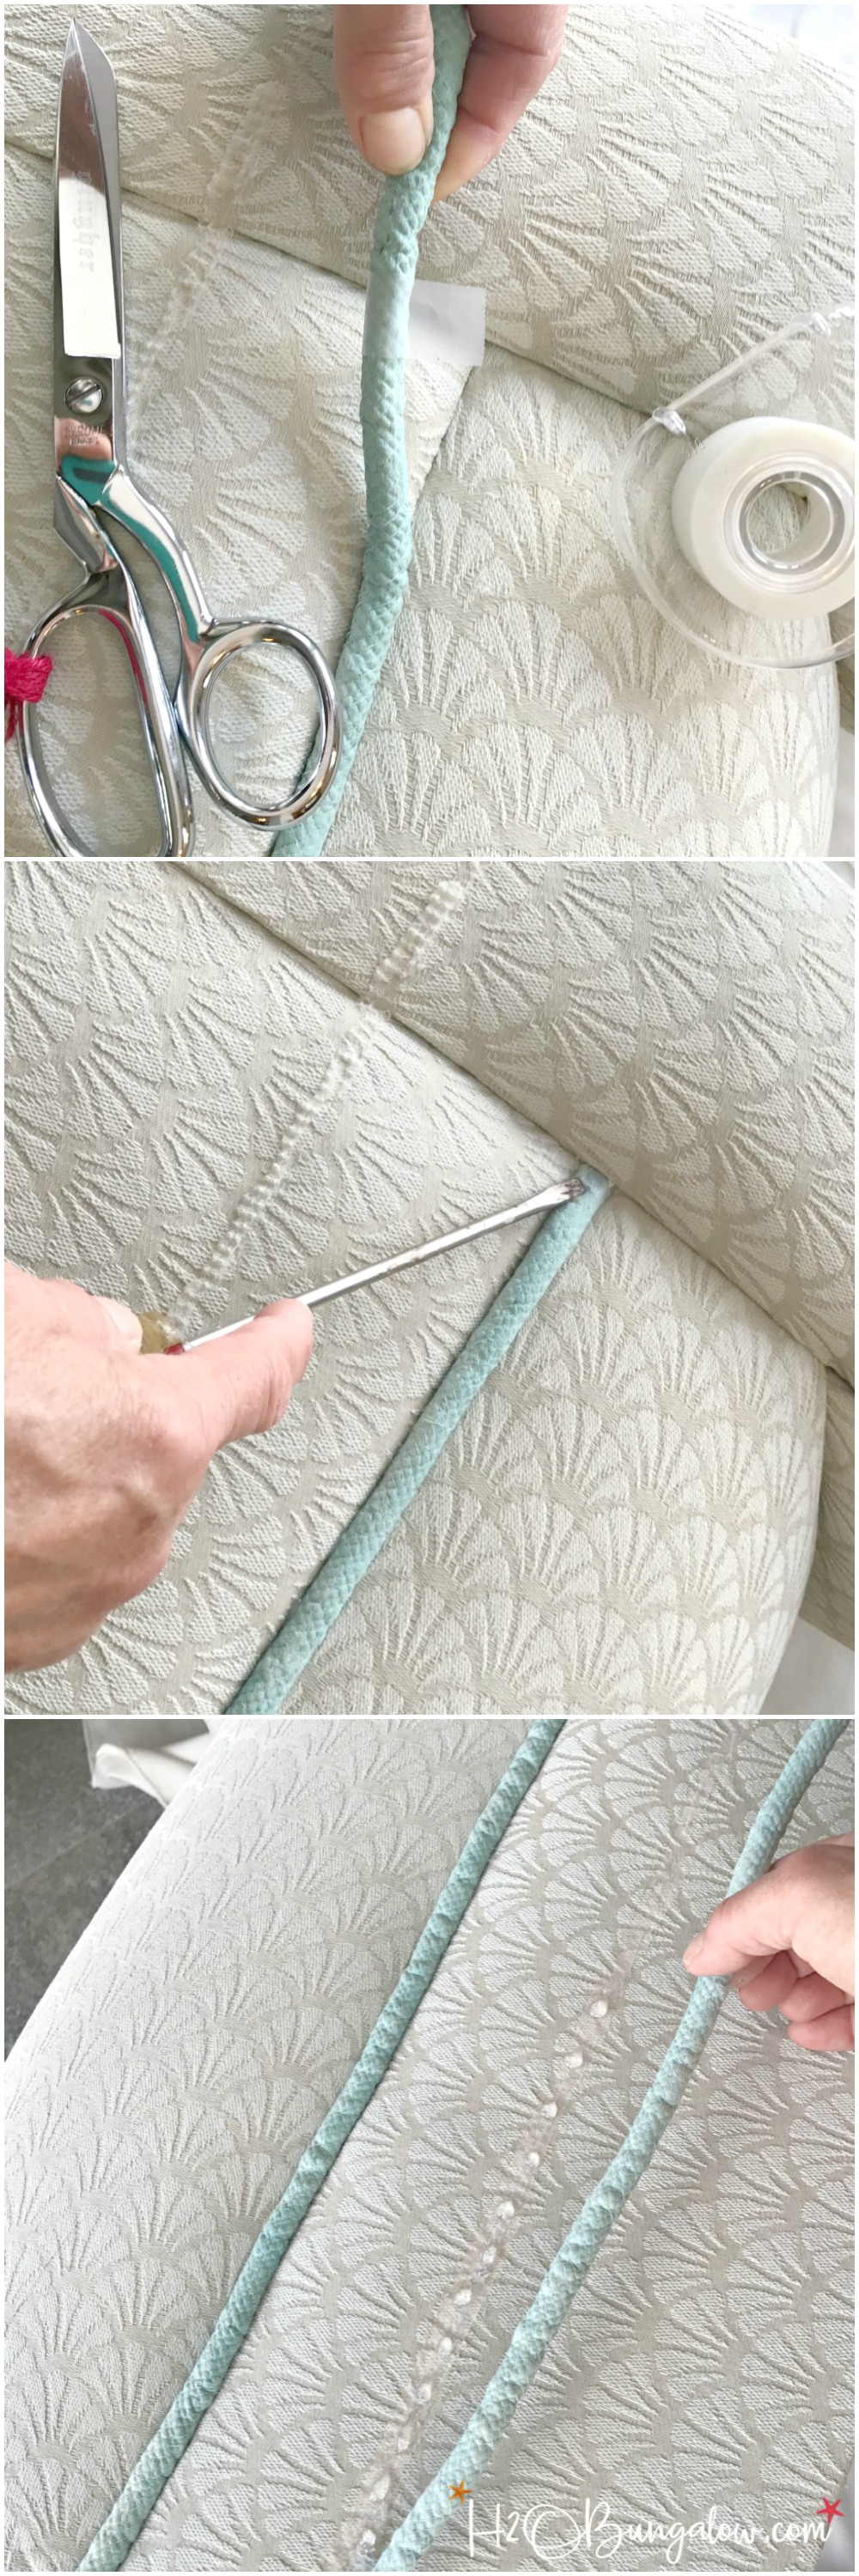 DIY painted upholstered chair makeover tutorial. How to paint a fabric chair with latex paint, add new trim and change the furniture legs for an easy update. Find over 450 home decor DIY tutorials on H2OBungalow.com